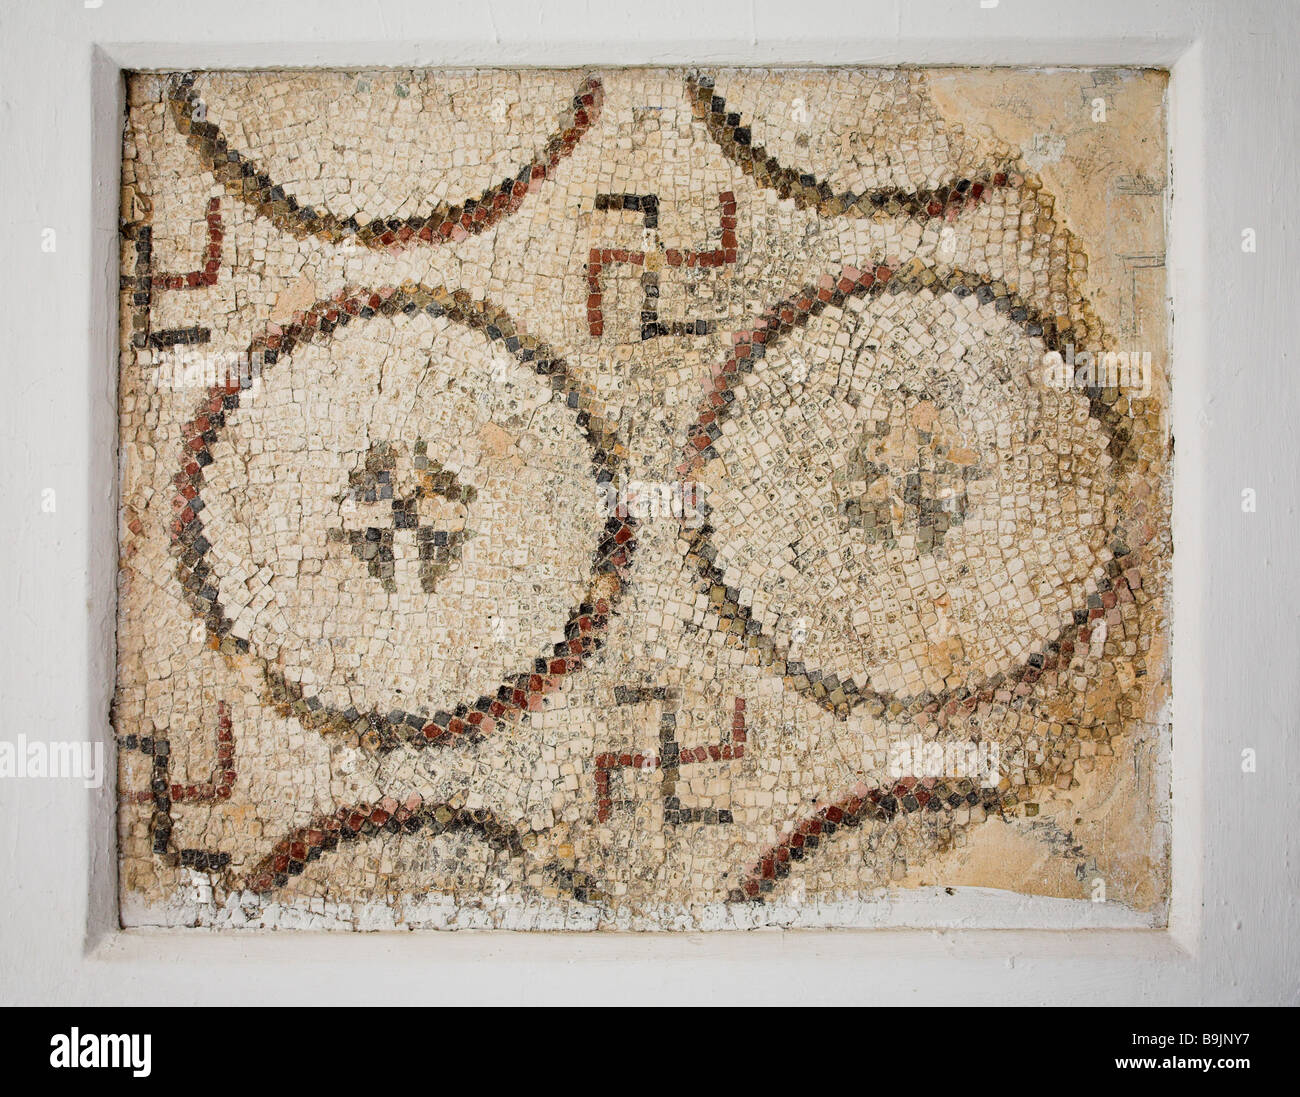 Mosaic showing swastika used as a design element at the Archaeological Museum, Sousse, Tunisia. Sousse, Tunisia. - Stock Image